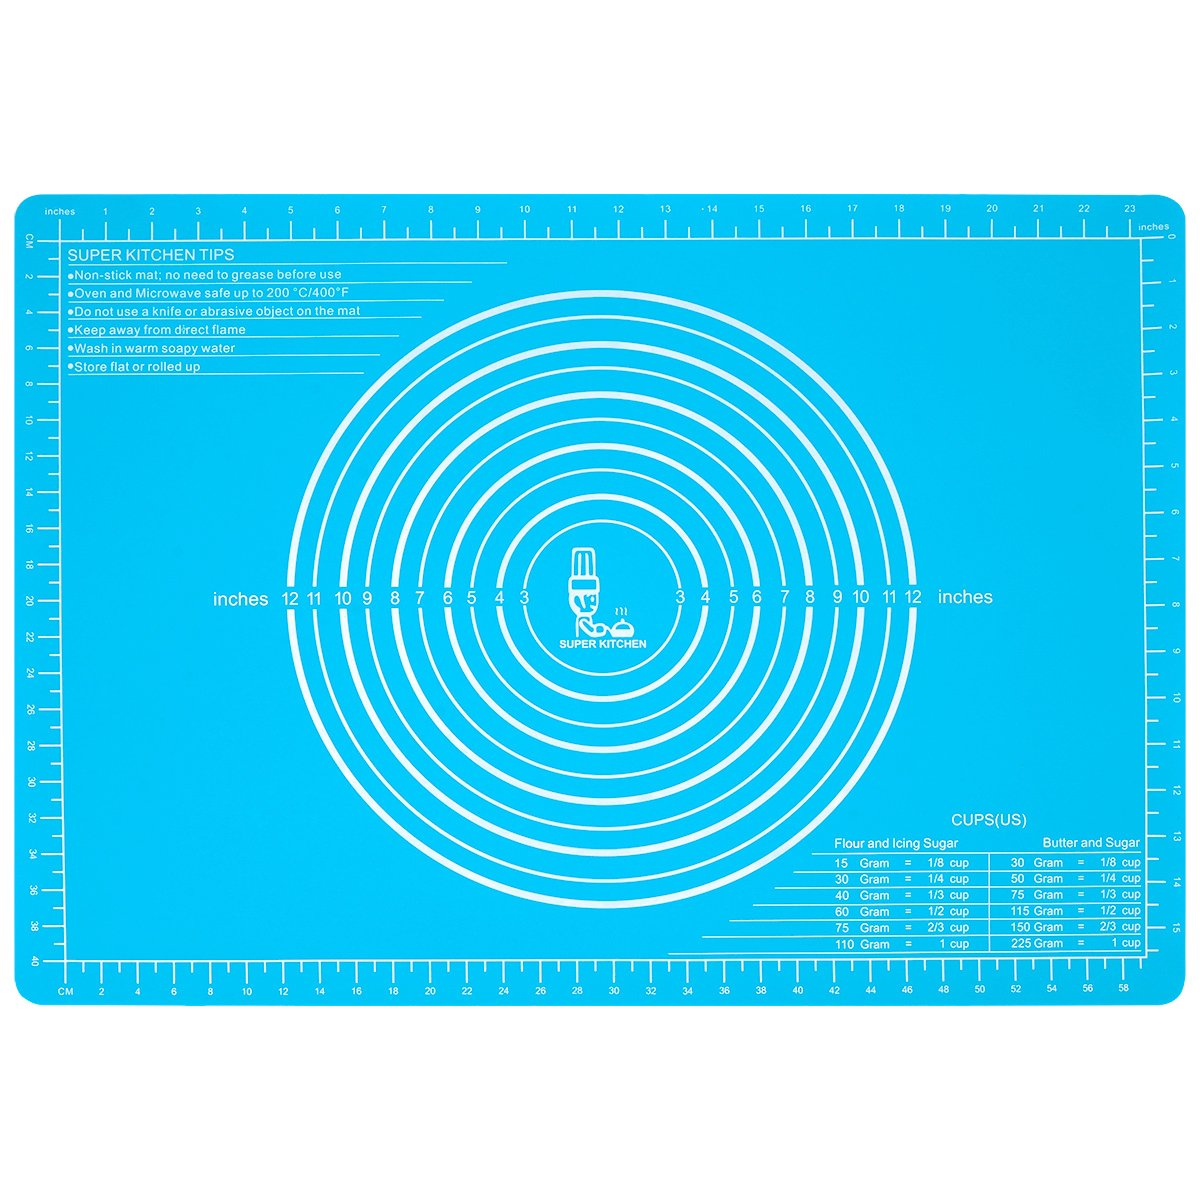 Extra Large Silicone Pastry Mat Non Stick with Measurements(65×45cm)for Non Slip Silicon Dough Rolling Baking Mats, Kneading/Table/Countertop/Place mats and Fondant/Sugarcraft/Pie Crust Sheet by Super Kitchen (Skyblue)